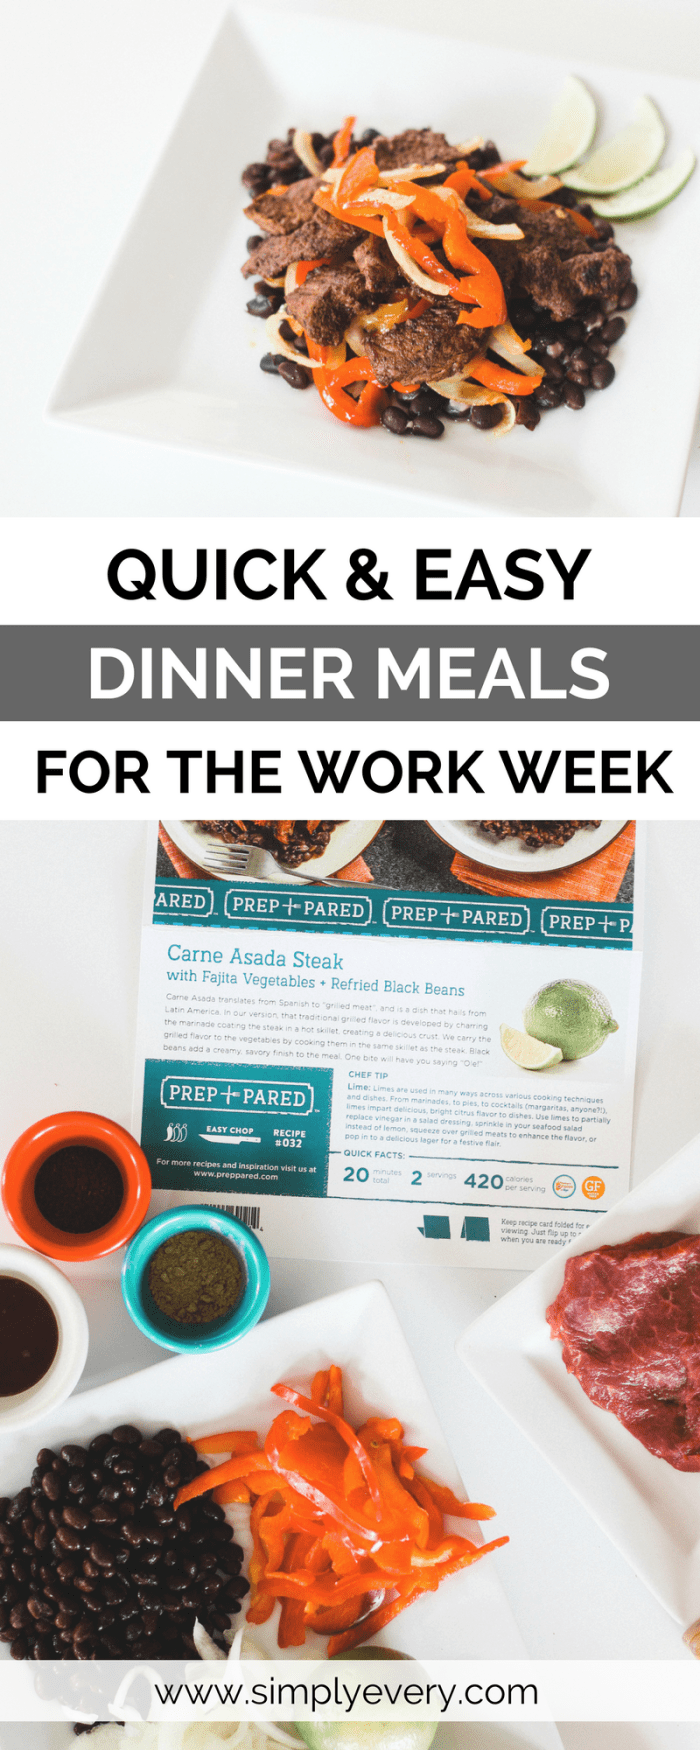 Easy Dinner Meals for the Work Week